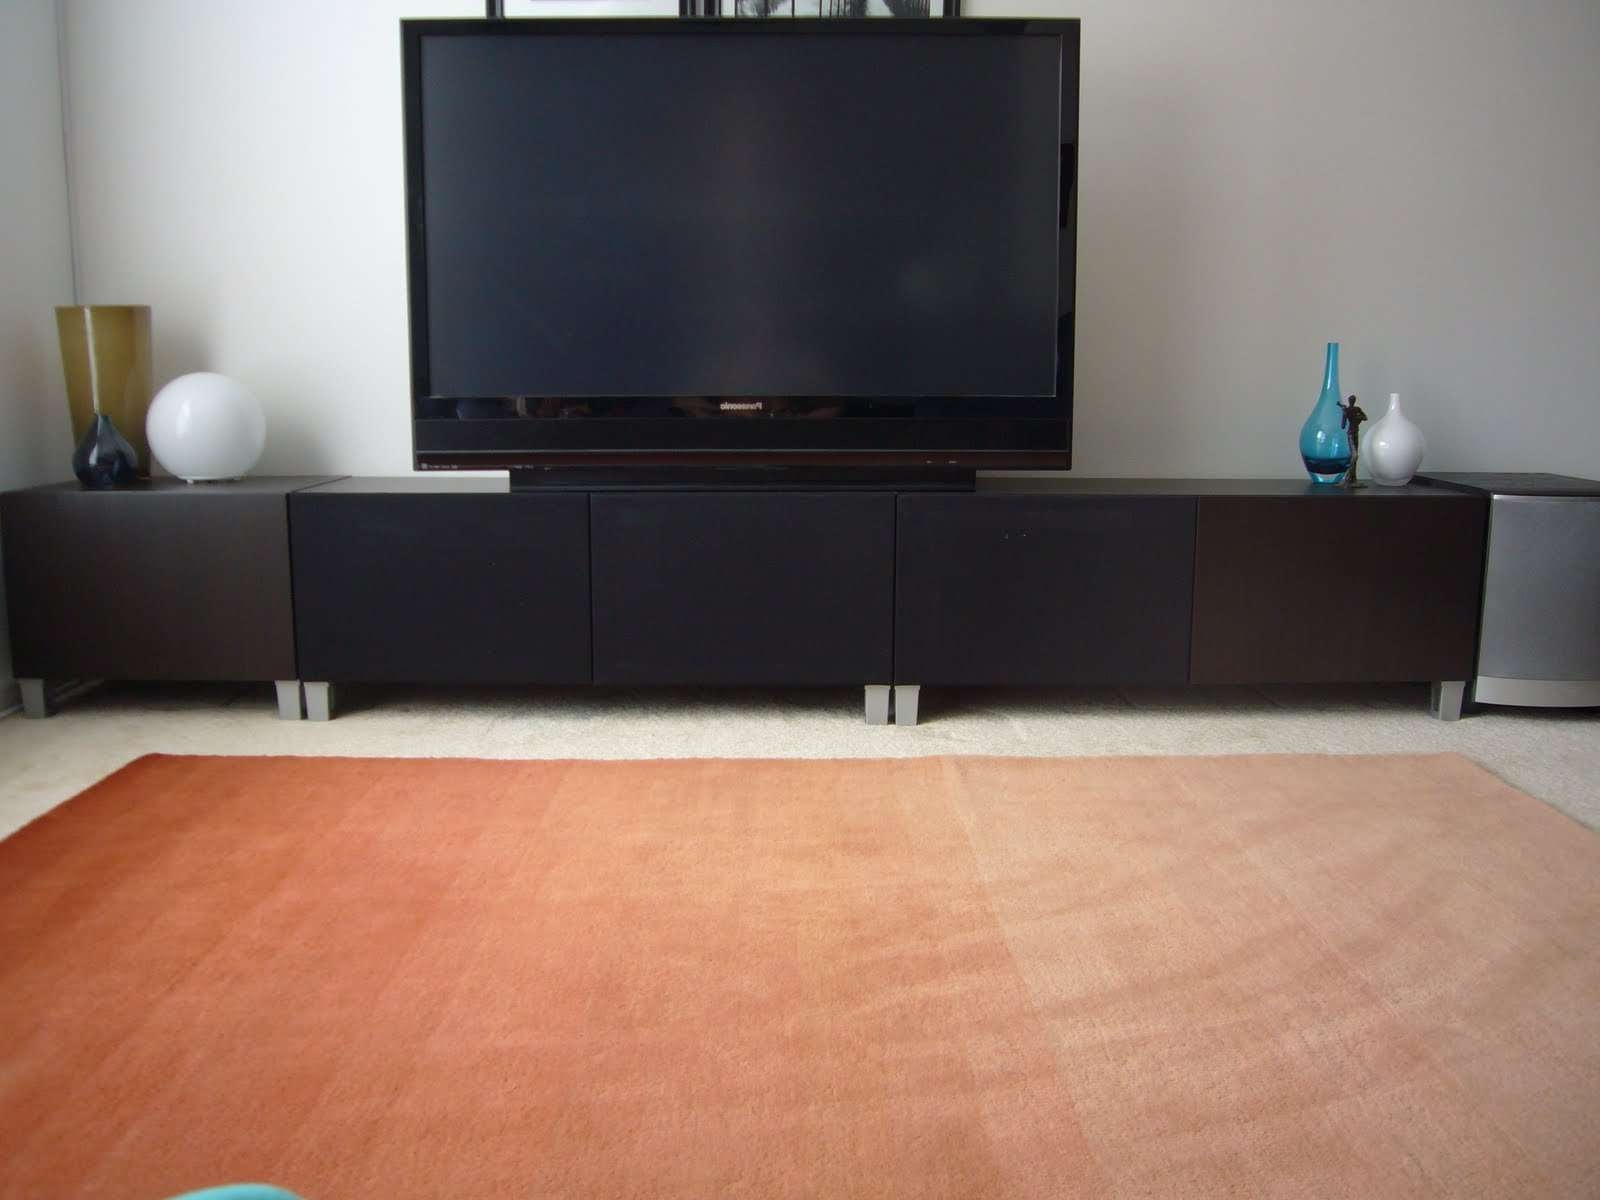 Ikea Besta Tv Stand With Black Tv O Top Long Black Wooden Cabinet With Regard To Long Tv Stands Furniture (Gallery 4 of 15)